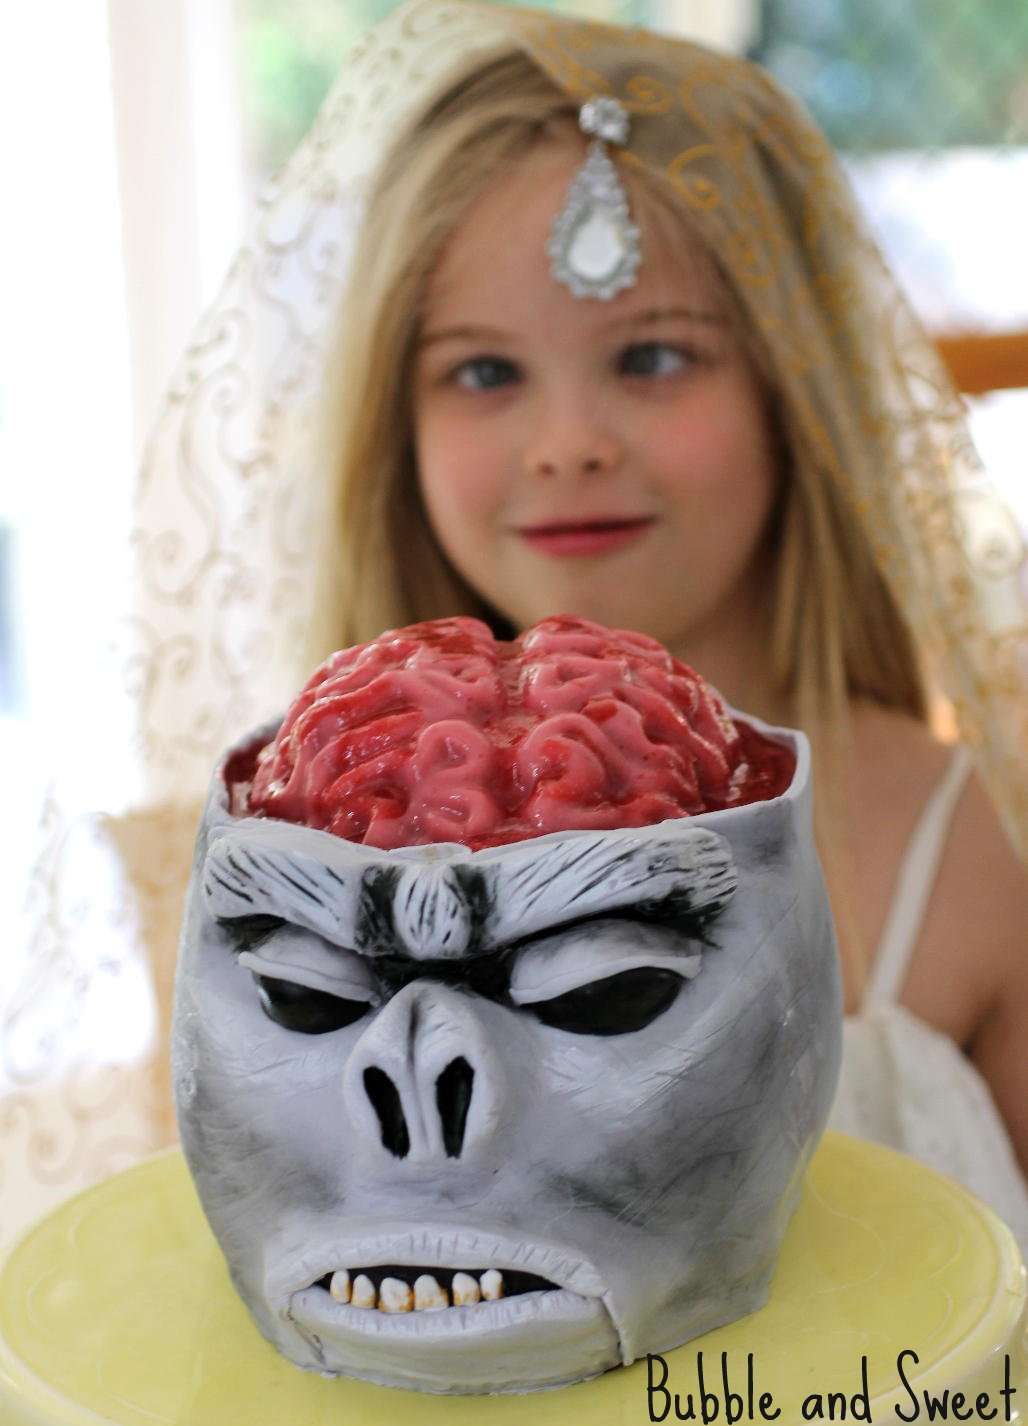 Bubble and Sweet: Monkey Brain Cake with Jelly Brain Tutorial